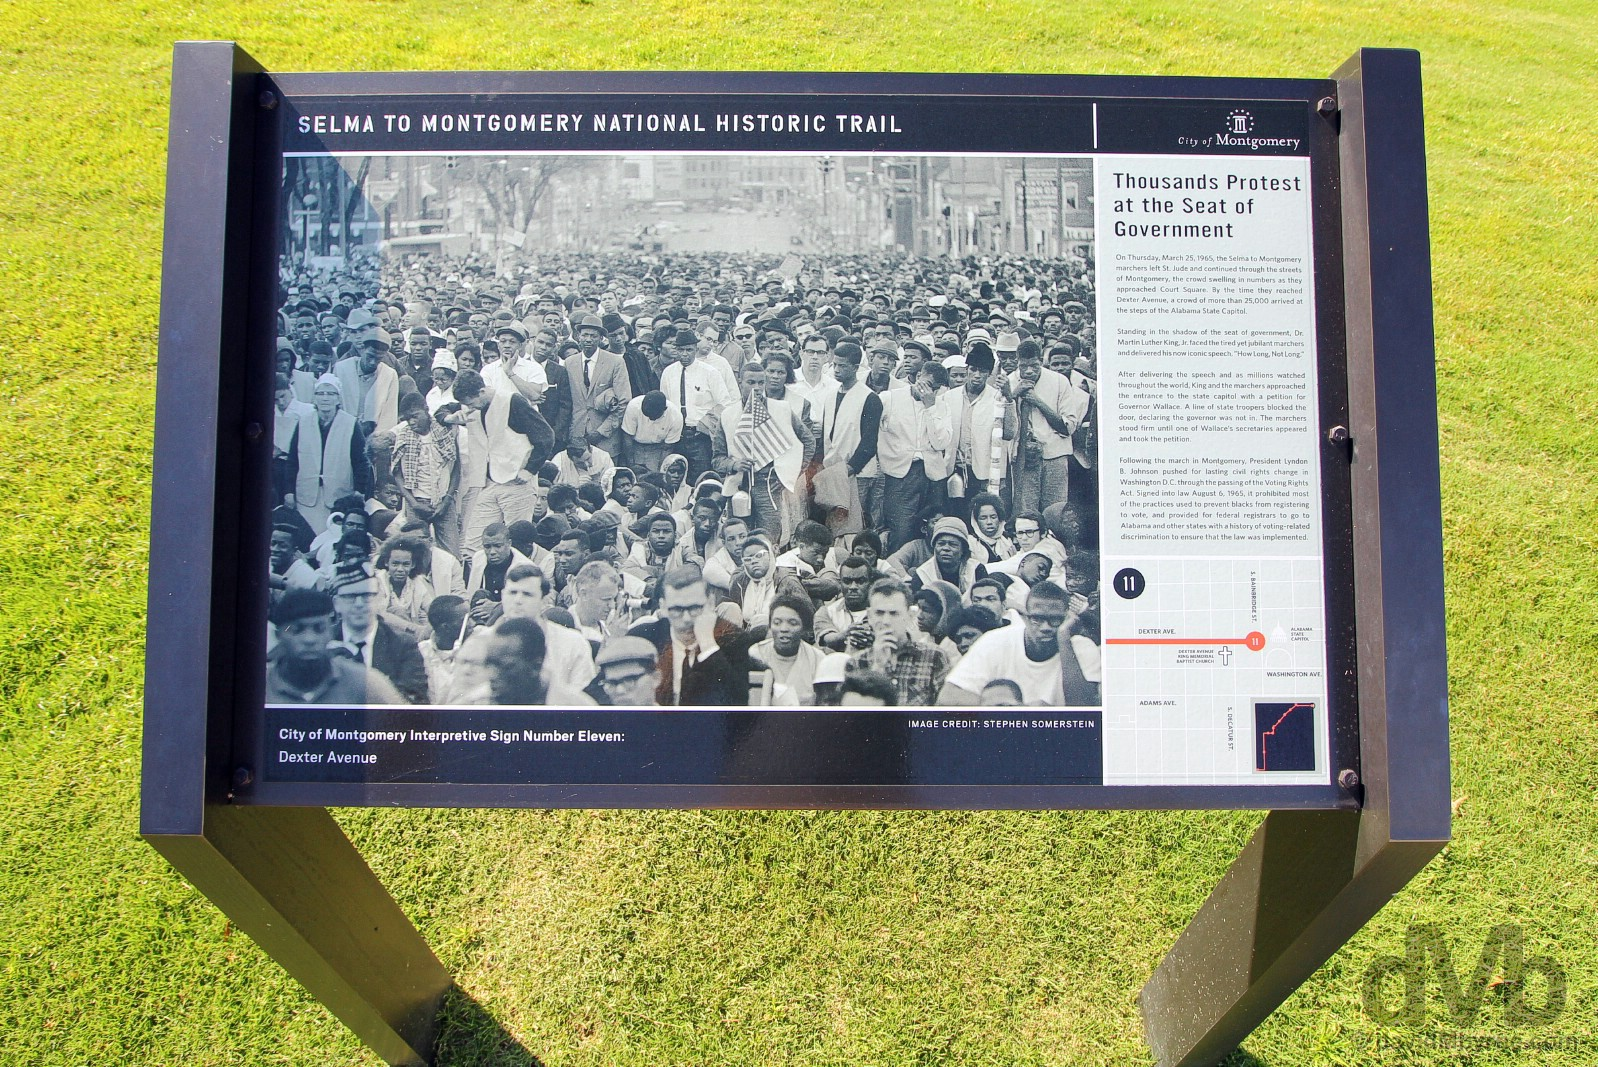 Selma To Montgomery National Historic Trail signage on Dexter Avenue in Downtown Montgomery, Alabama, USA. September 21, 2016.